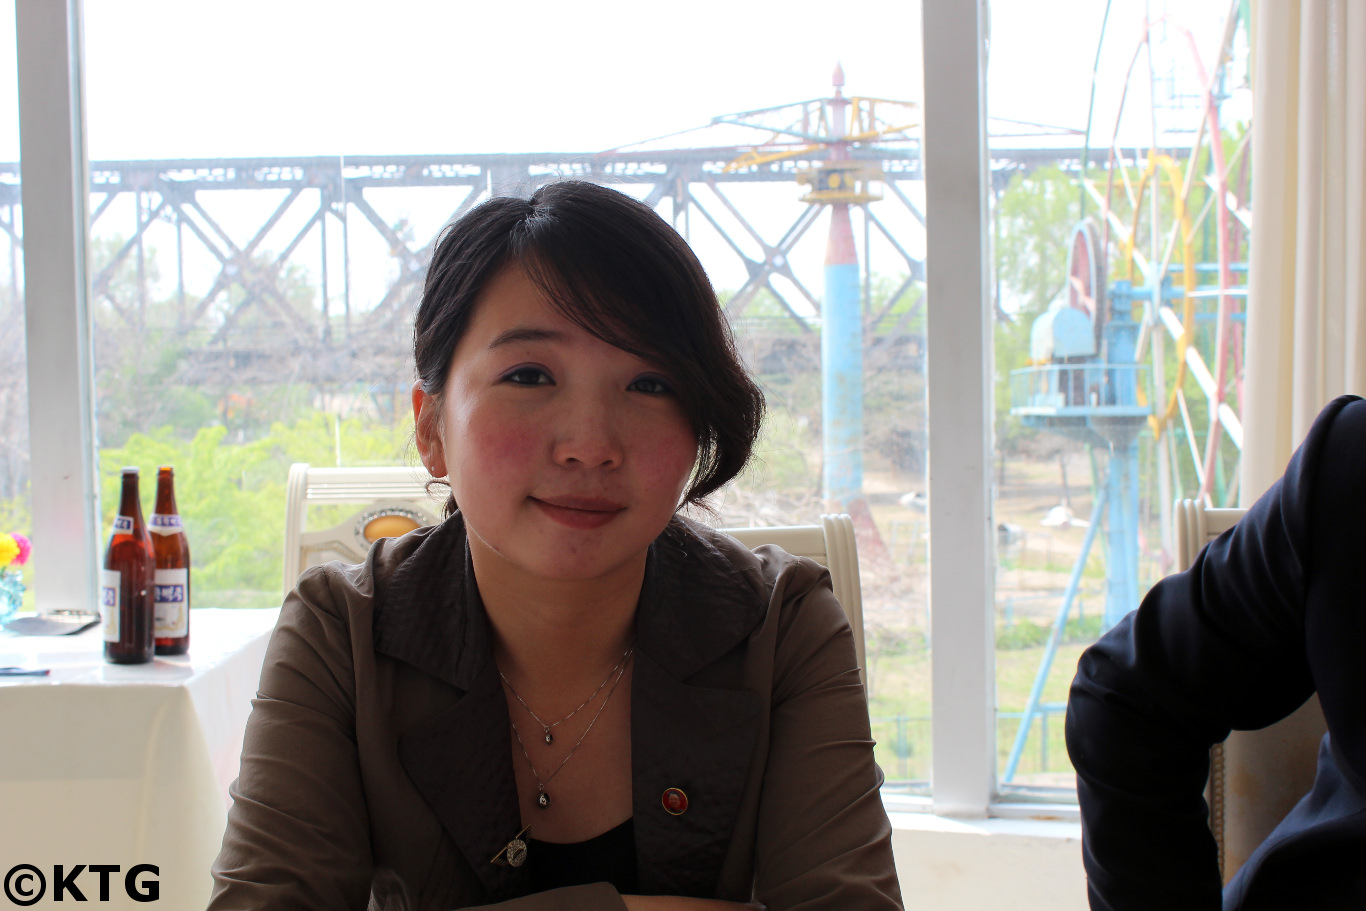 Ms Kim, North Korean guide from Pyongyang having lunch at the Myohyansgan agency restaurant in Sinuiju city in North Korea, DPRK, just across from Dandong in China. The bridge in the background is the friendhsip bridge that connects both countries. Picture taken by KTG Tours